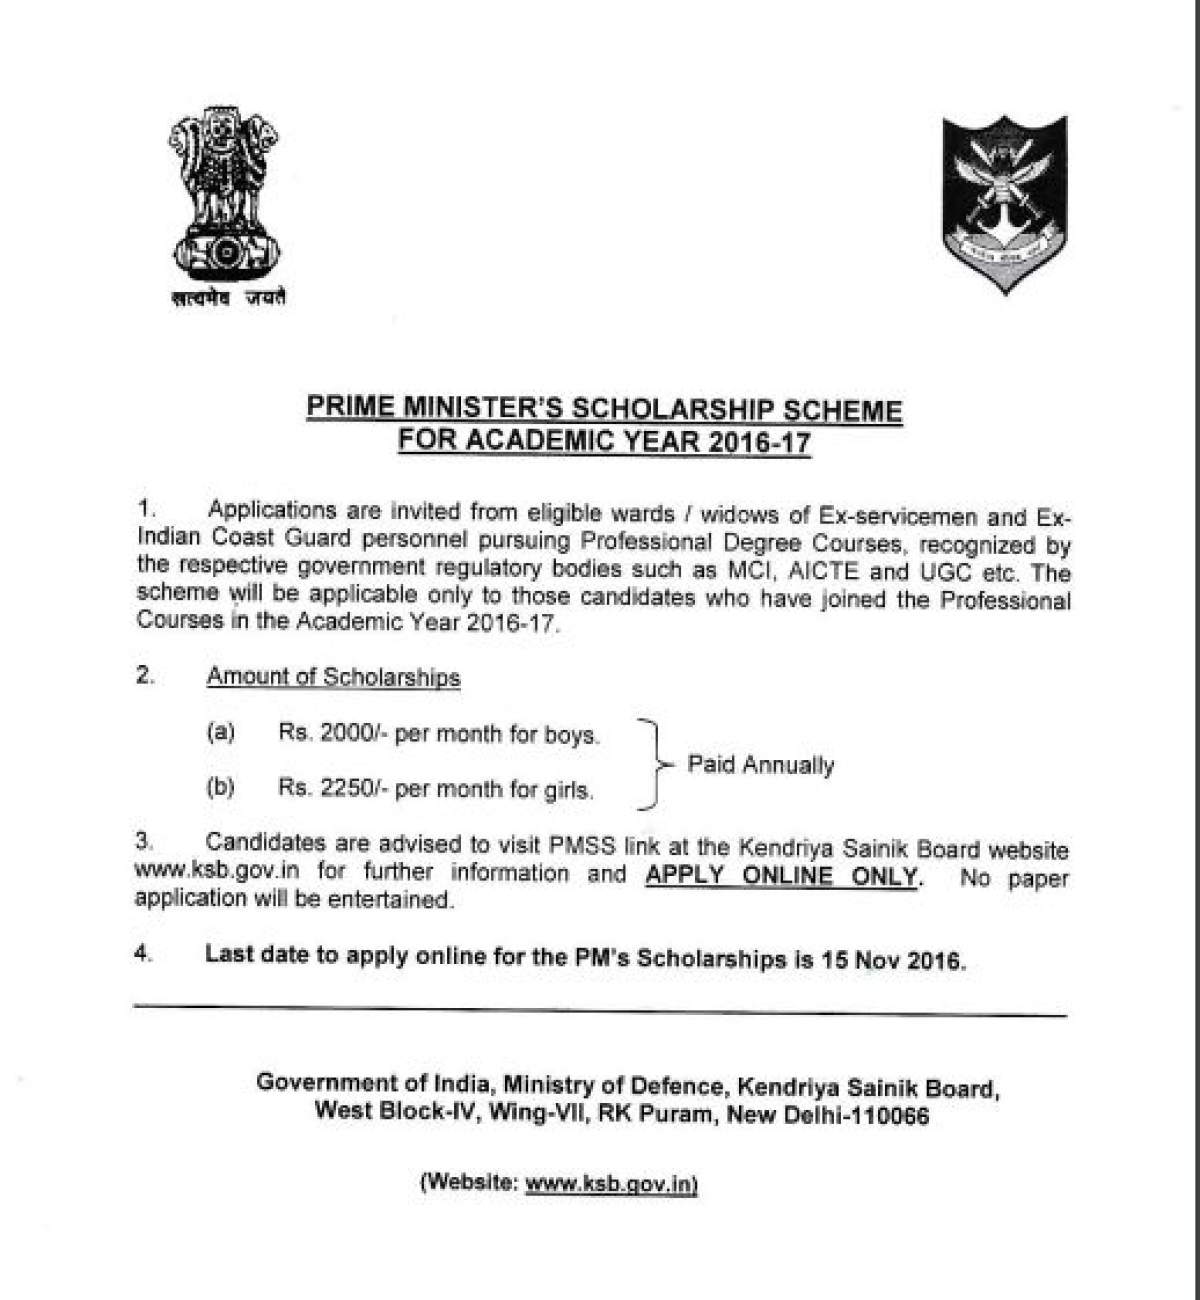 PM's Scholarship Scheme for dependent wards/widows of ex-servicemen and ex-Indian coast guard personnel